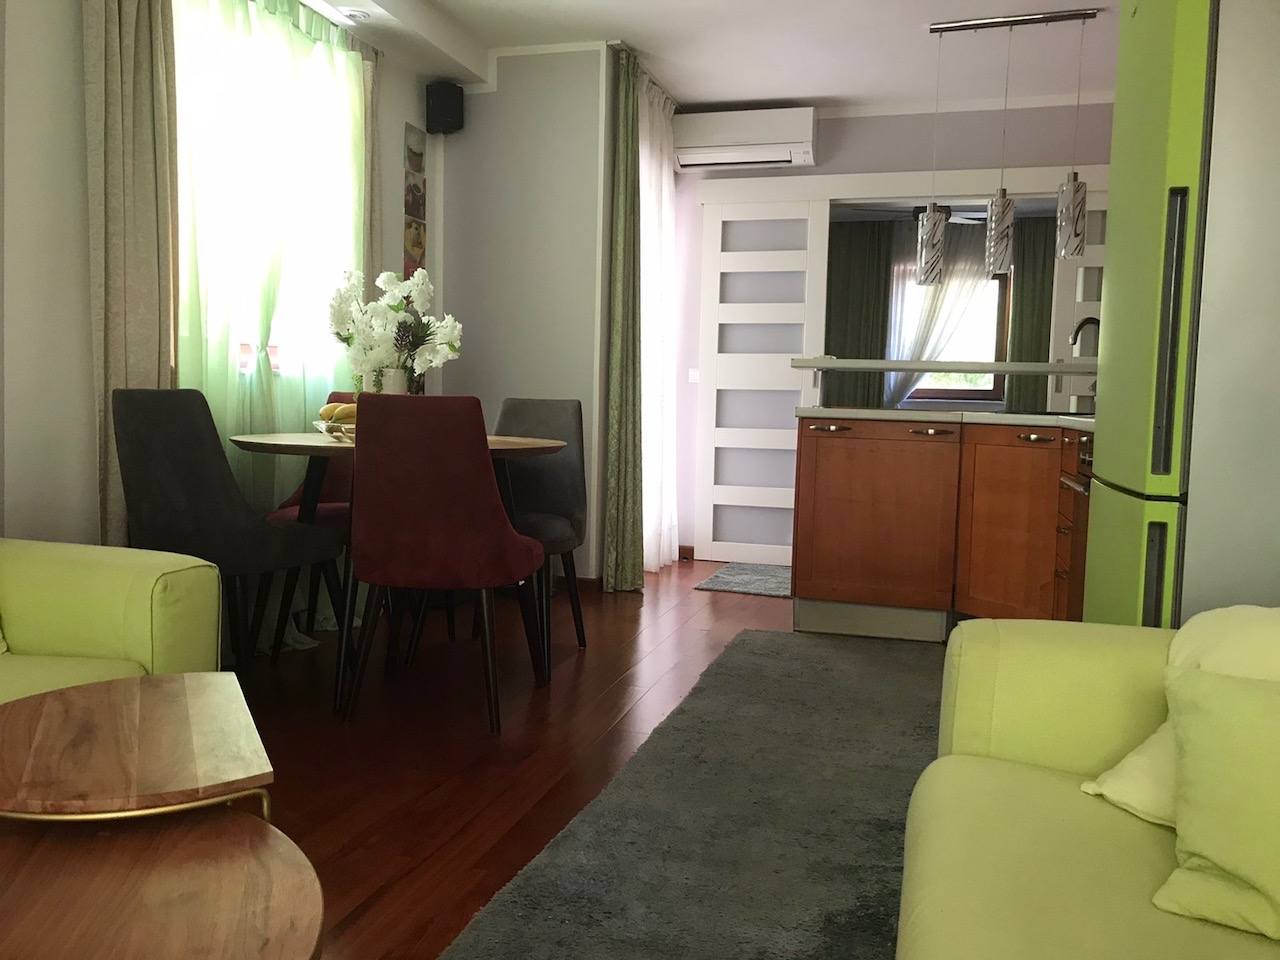 Apartments for sale in Vrboska with close access to town centre